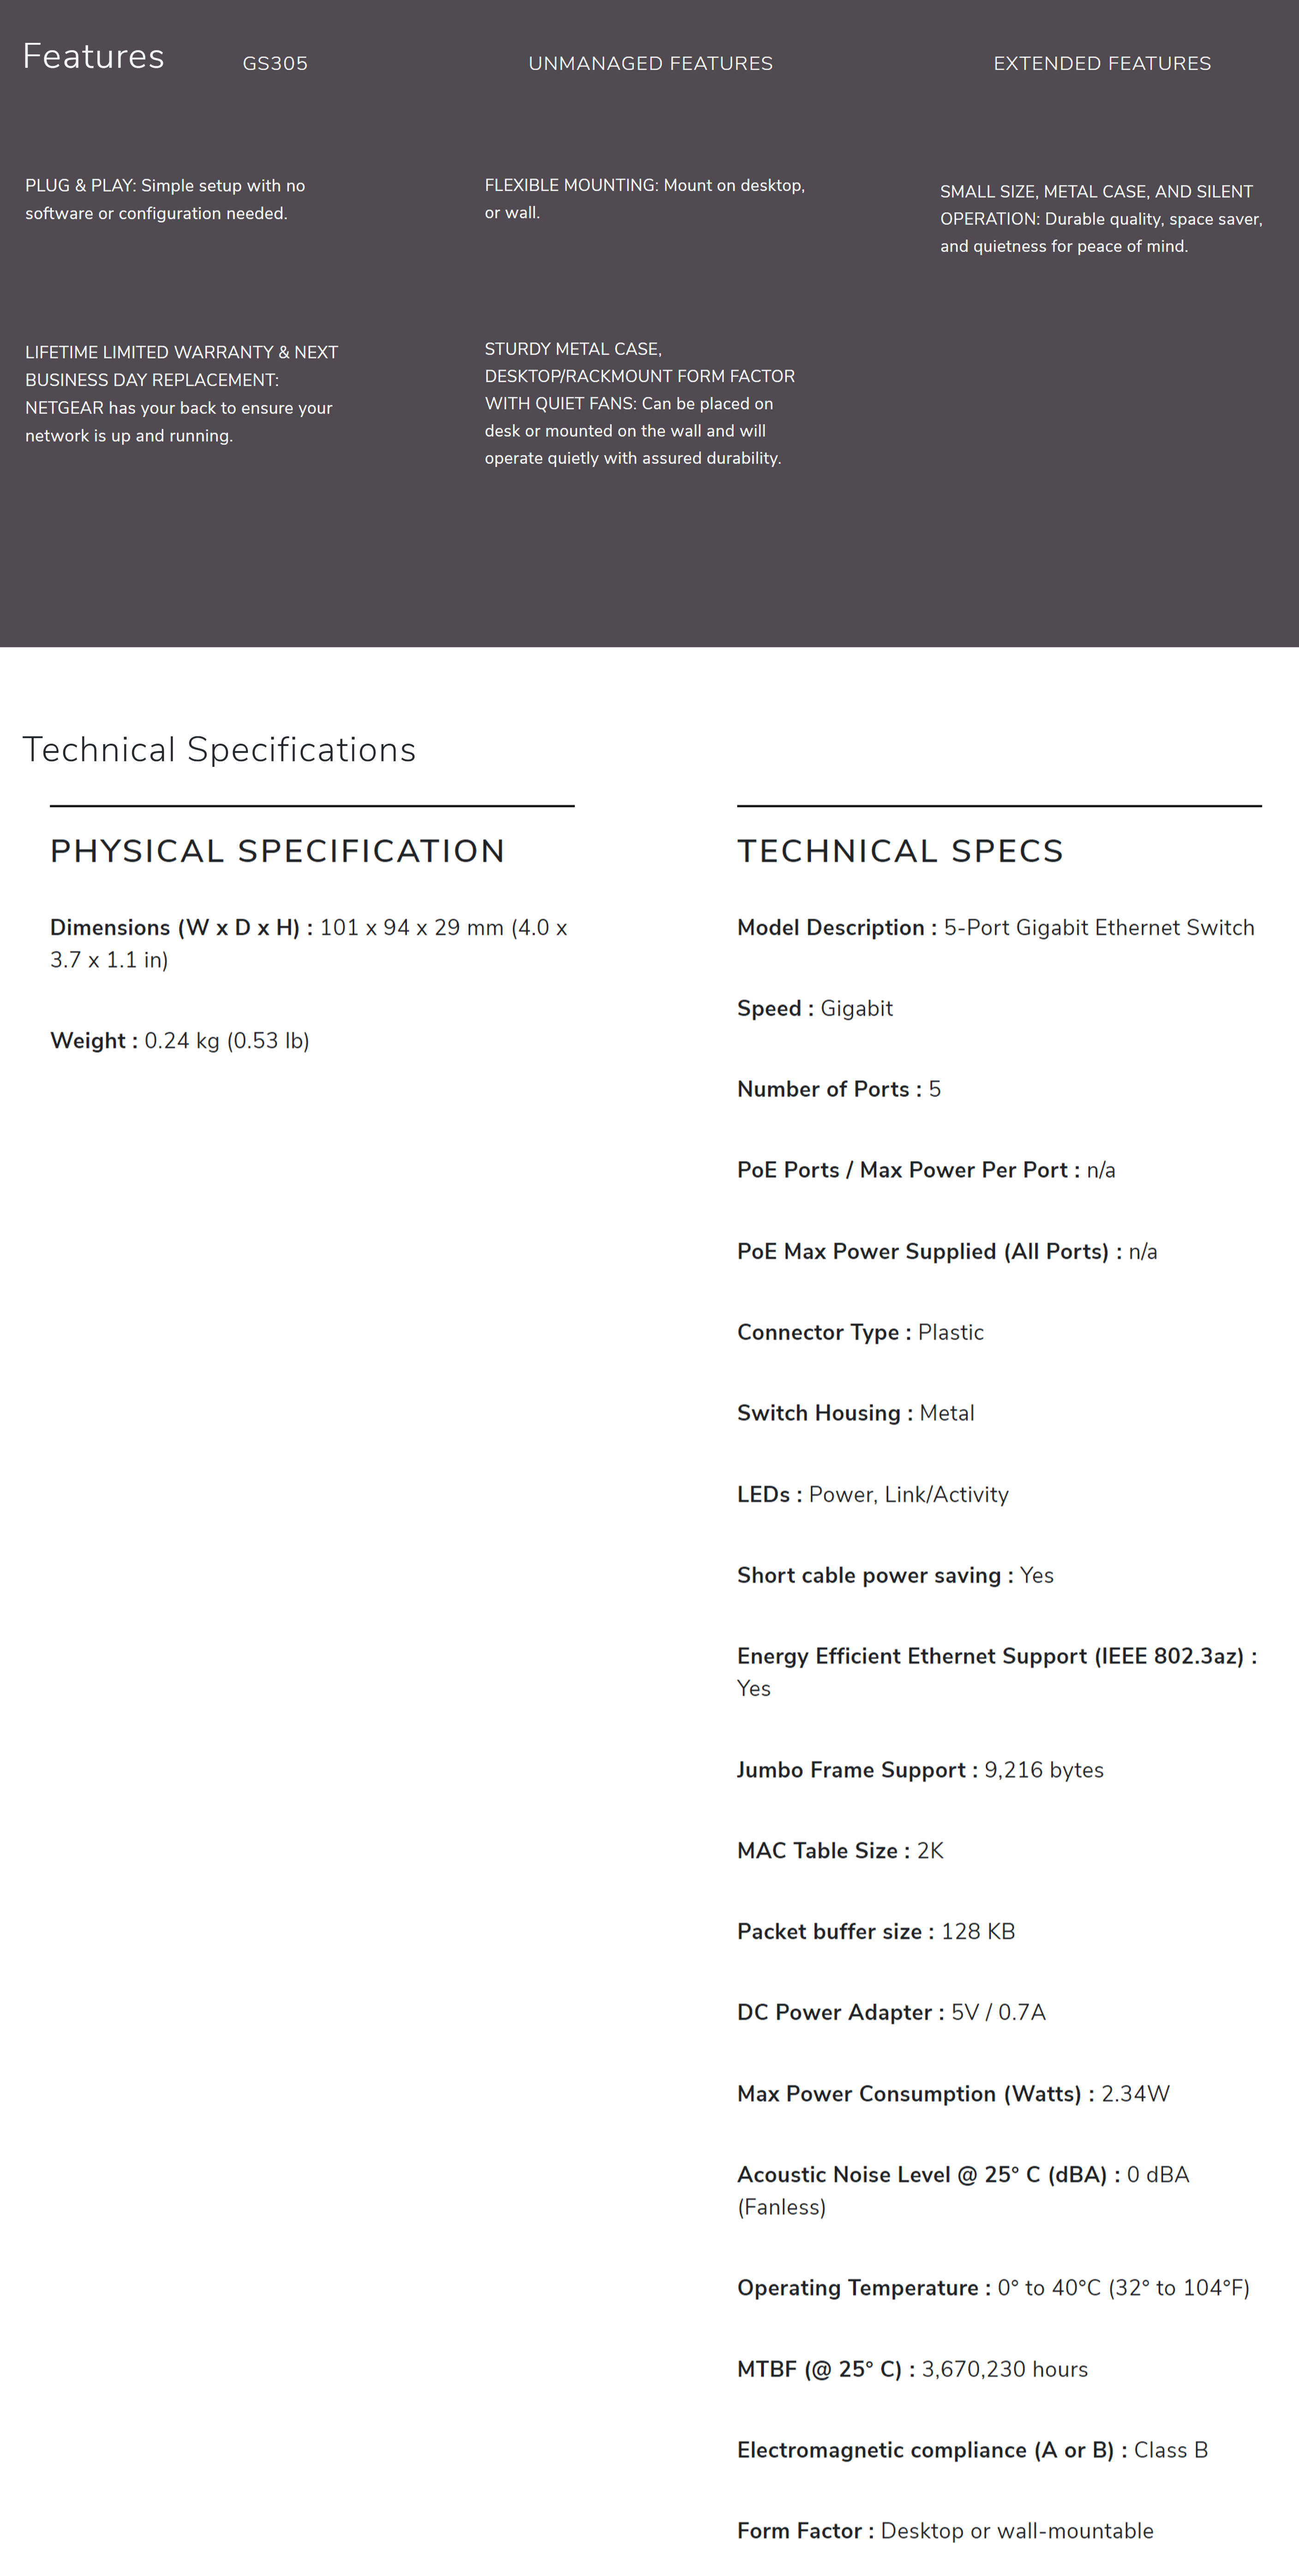 screencapture-netgear-business-wired-switches-unmanaged-gs305-2021-01-19-11_28_39.png